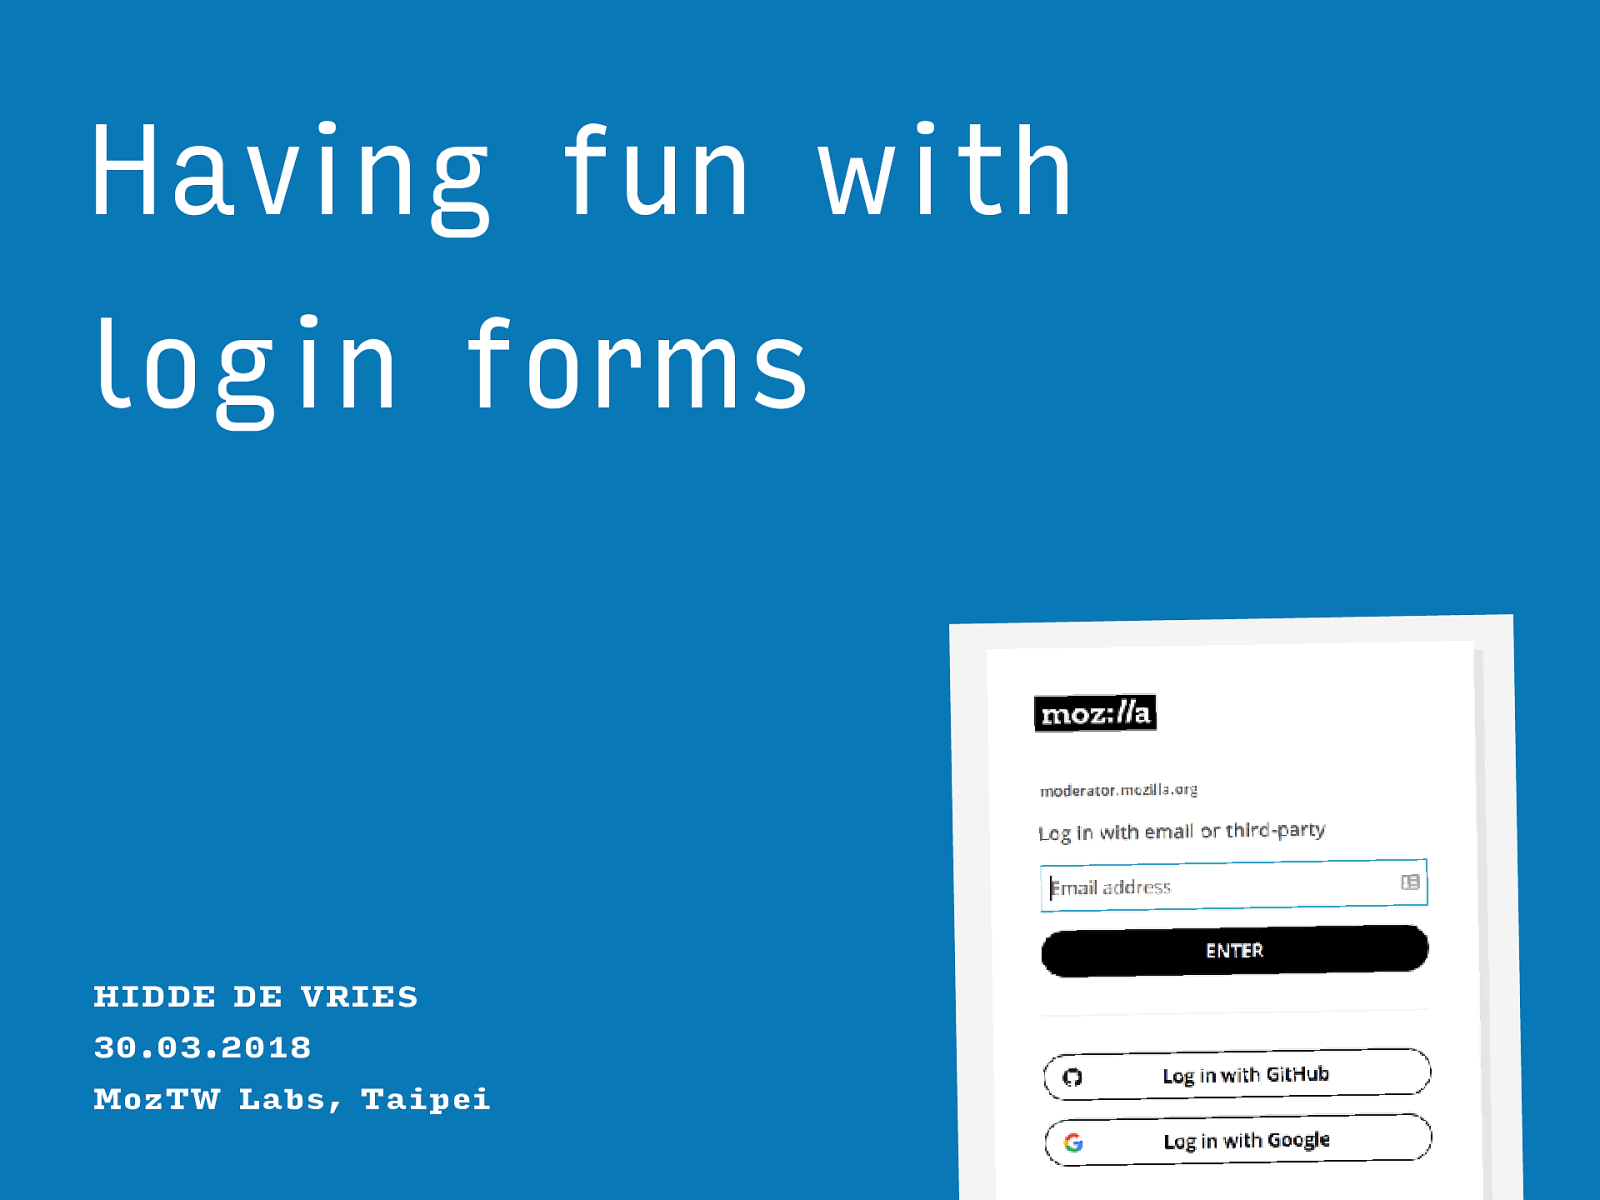 Having fun with login forms